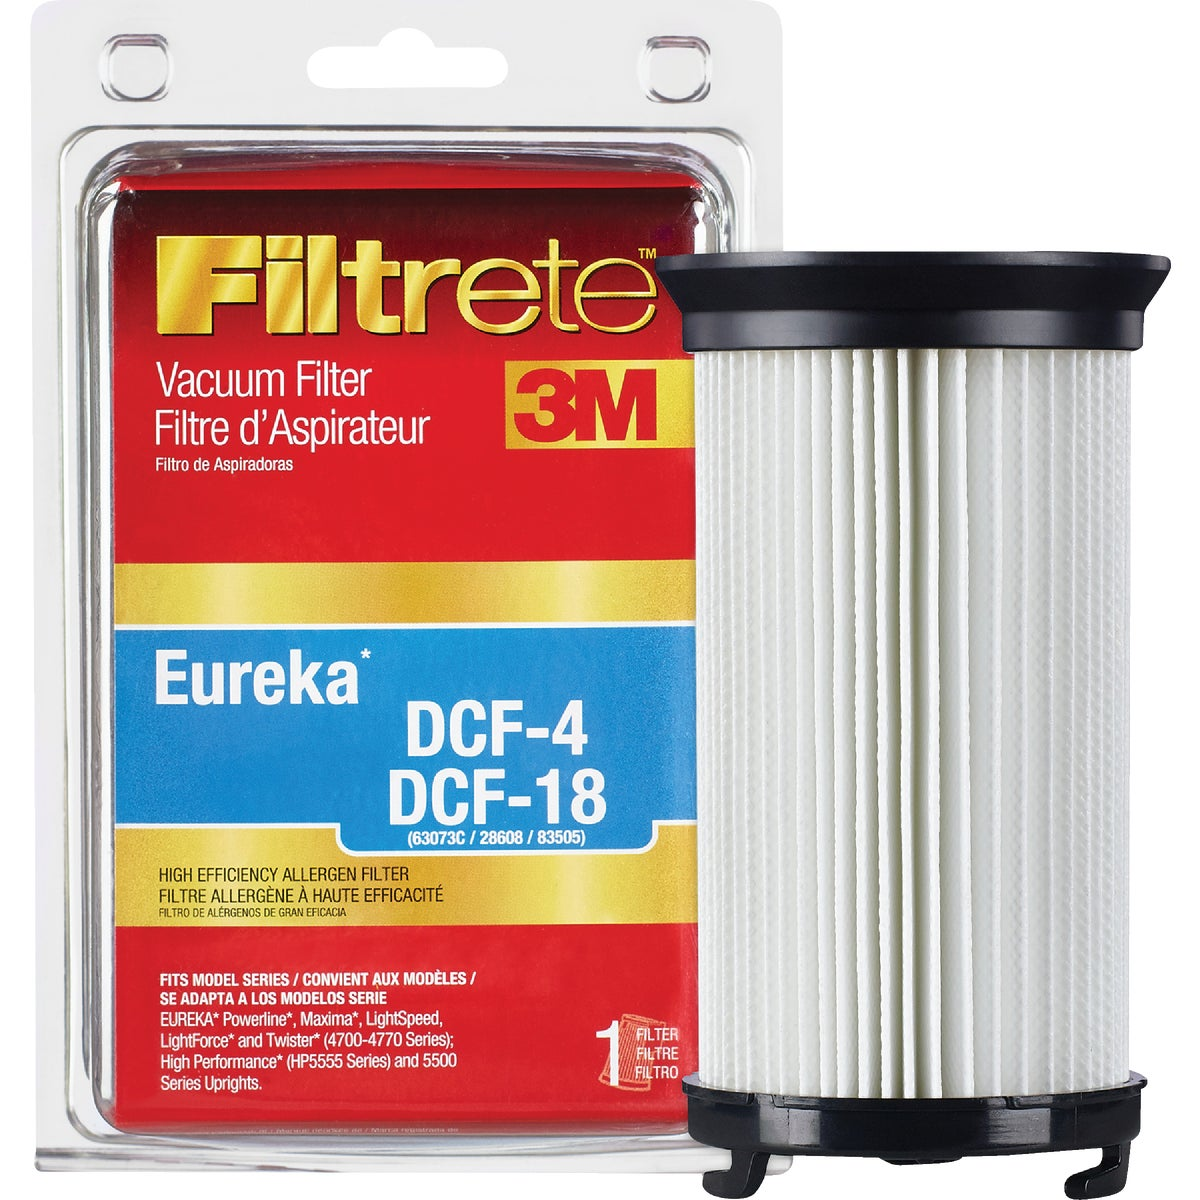 Eureka DCF-4 and DCF-18 HEPA Filter, 67814C-2